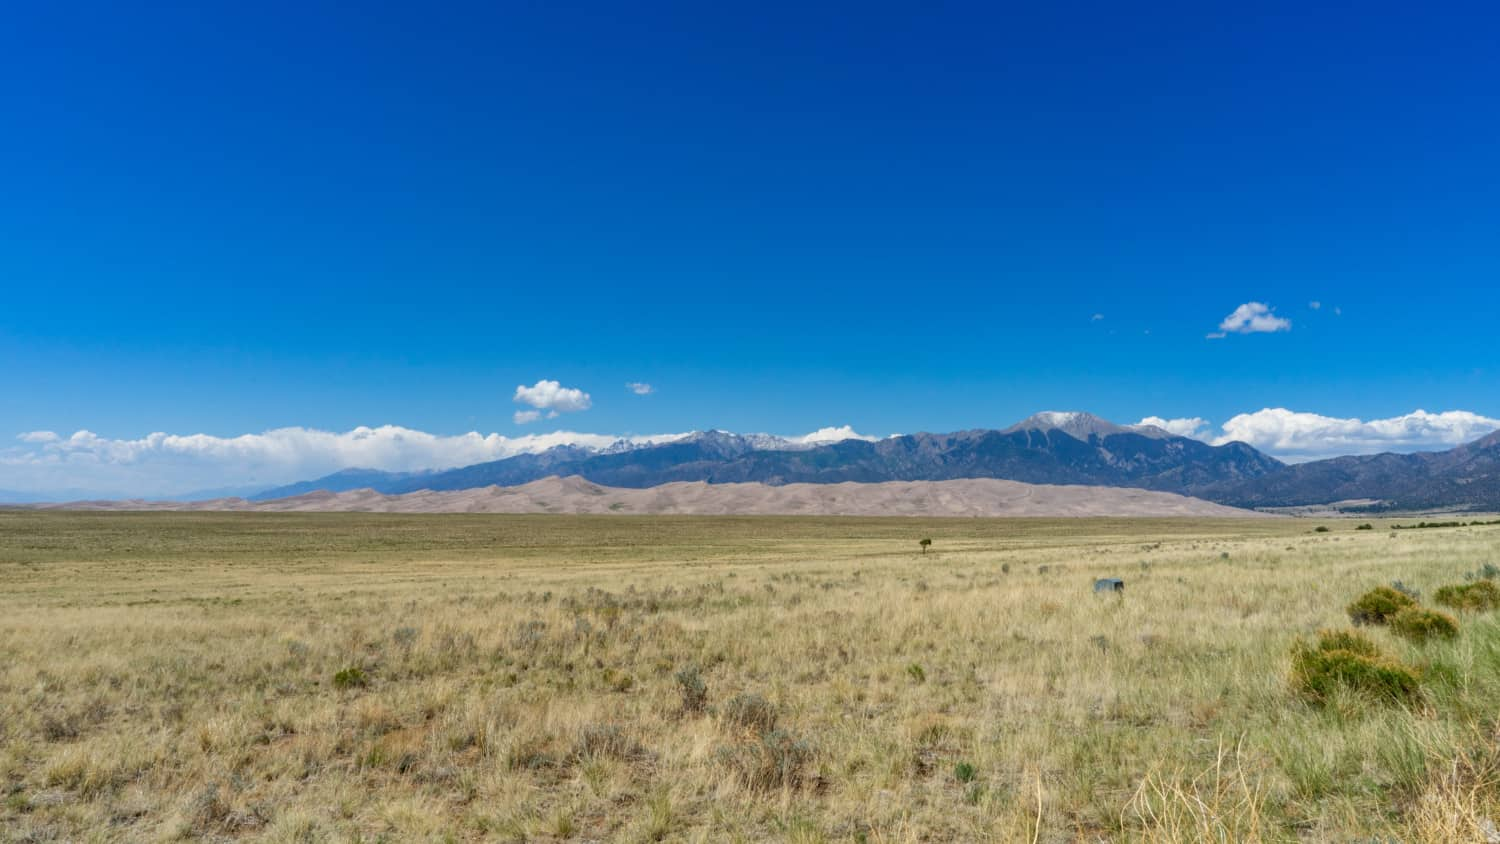 View of pet friendly Great Sand Dunes National Park with the Sangre de Cristo Mountains in the background